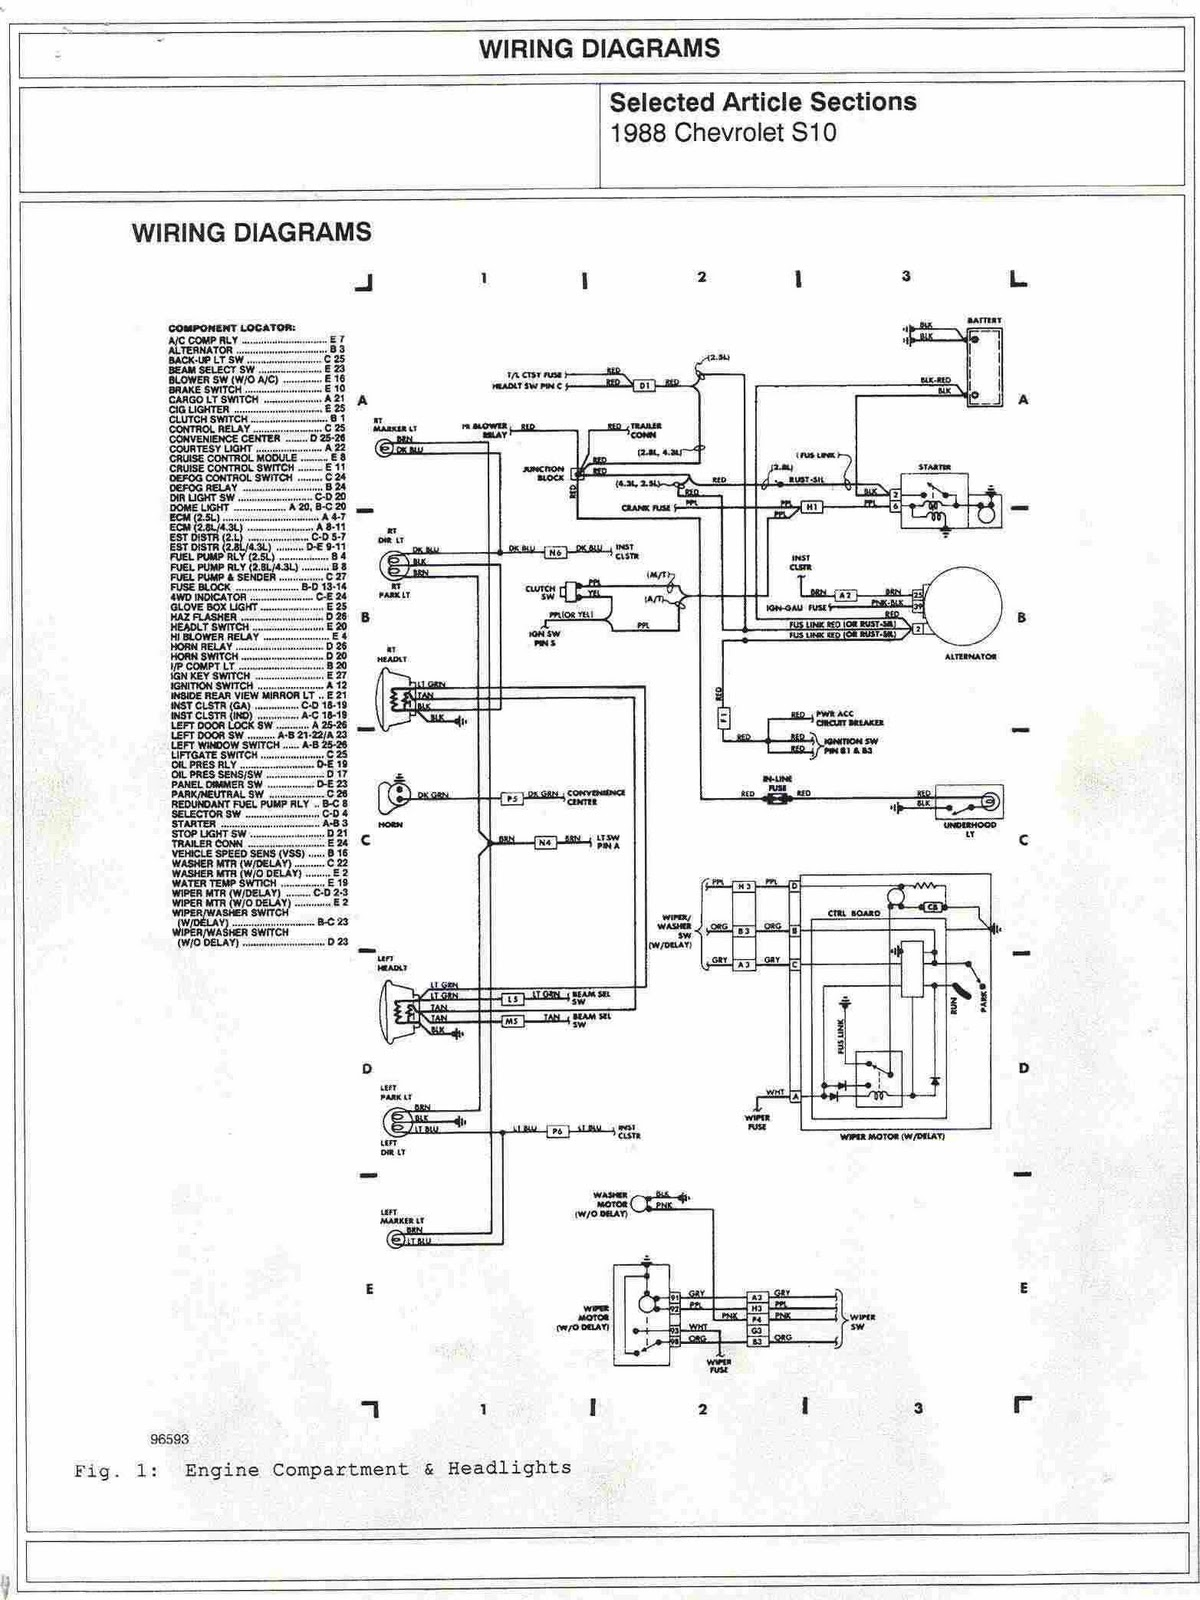 s10 2 engine diagram s10 wiring diagram s10 image wiring diagram wiring diagram 1988 chevy s10 fuel pump the wiring